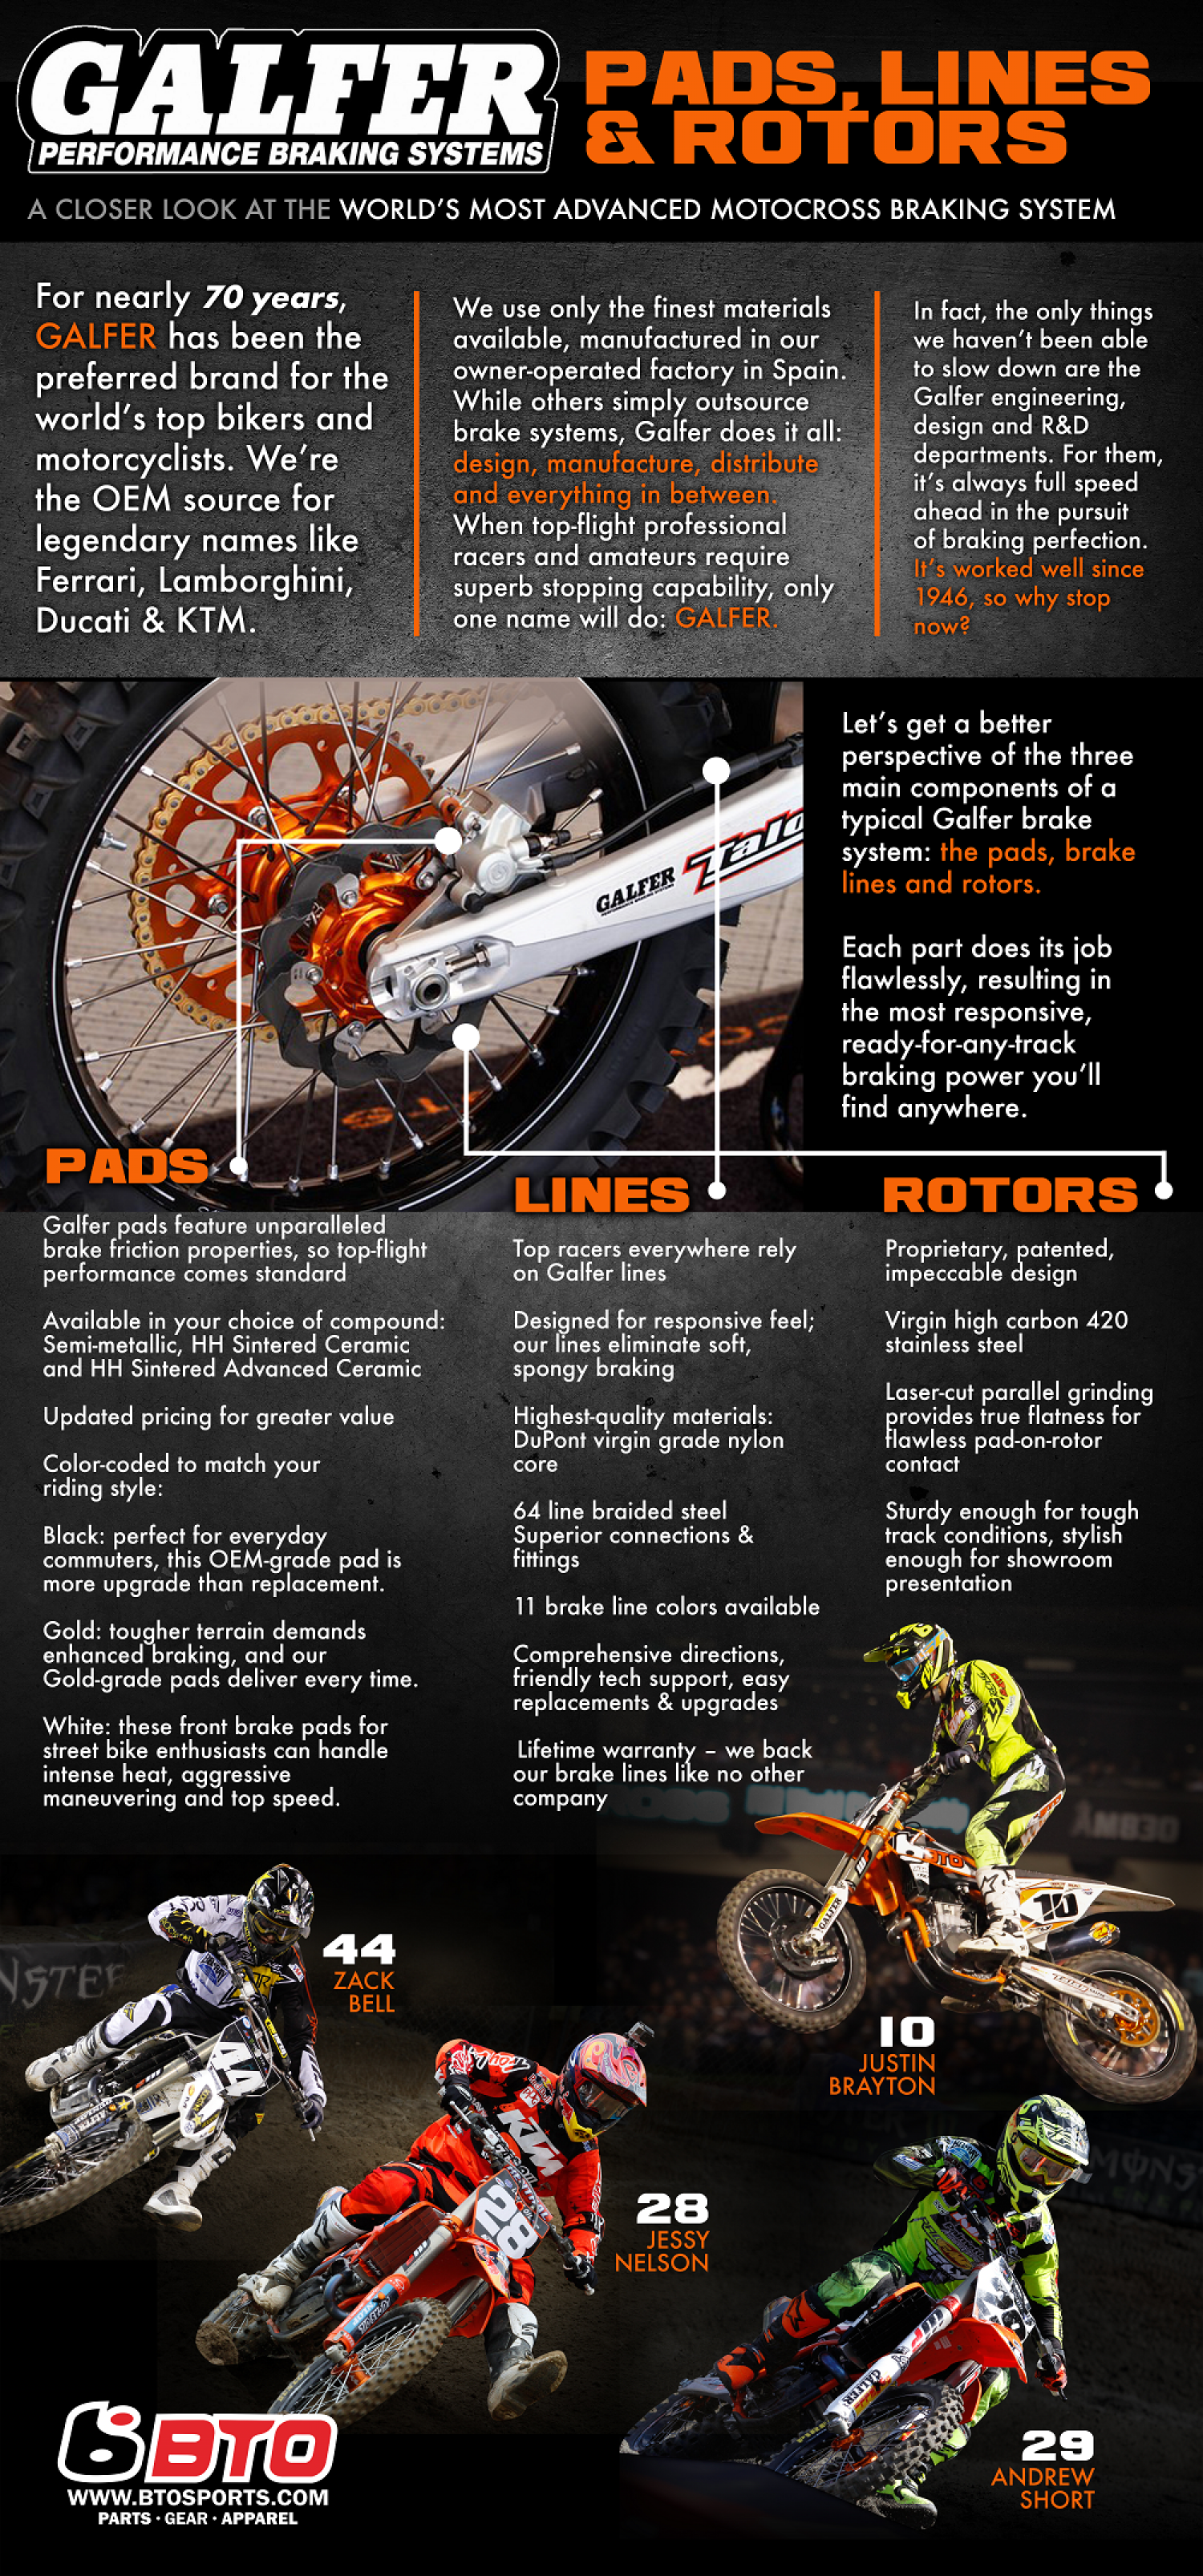 A Close Look at the Worlds Most Advanced Brake System Infographic